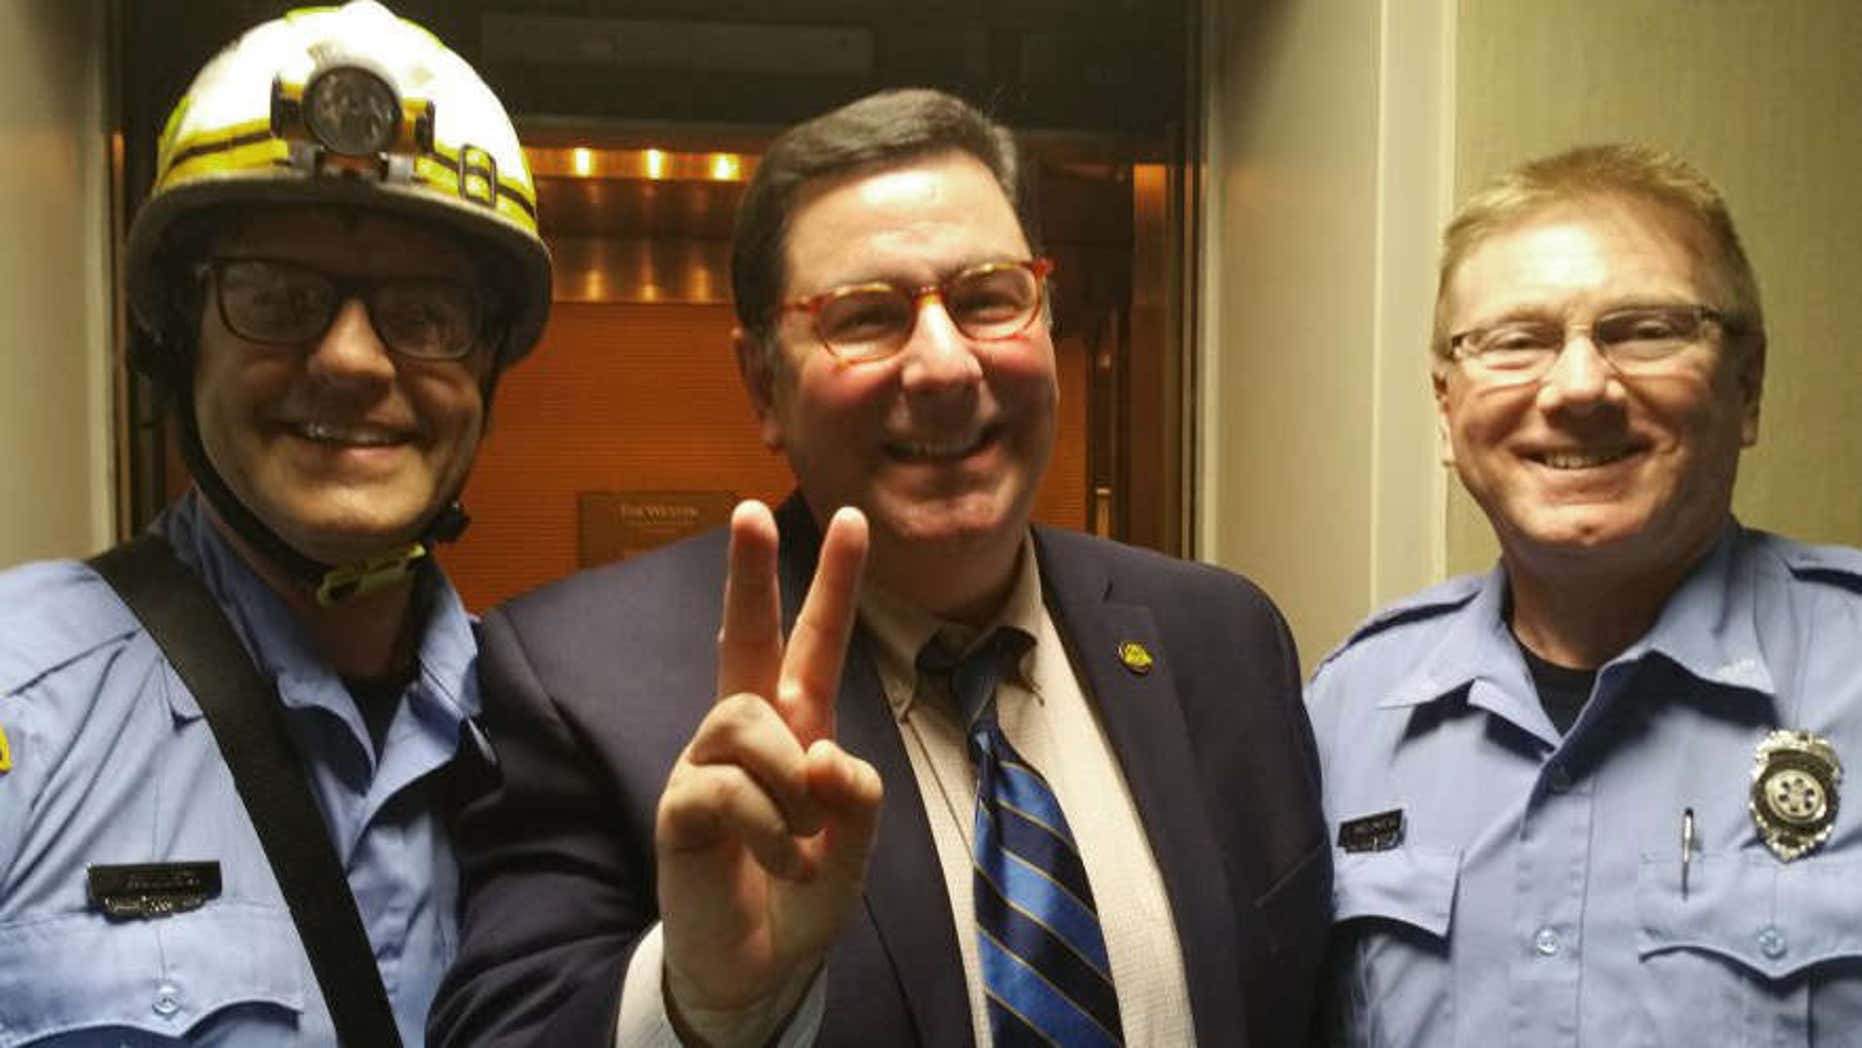 This photo provided by Pittsburgh Mayor Bill Peduto on Thursday, May 19, 2016 shows Peduto posing with two paramedics in Pittsburgh.